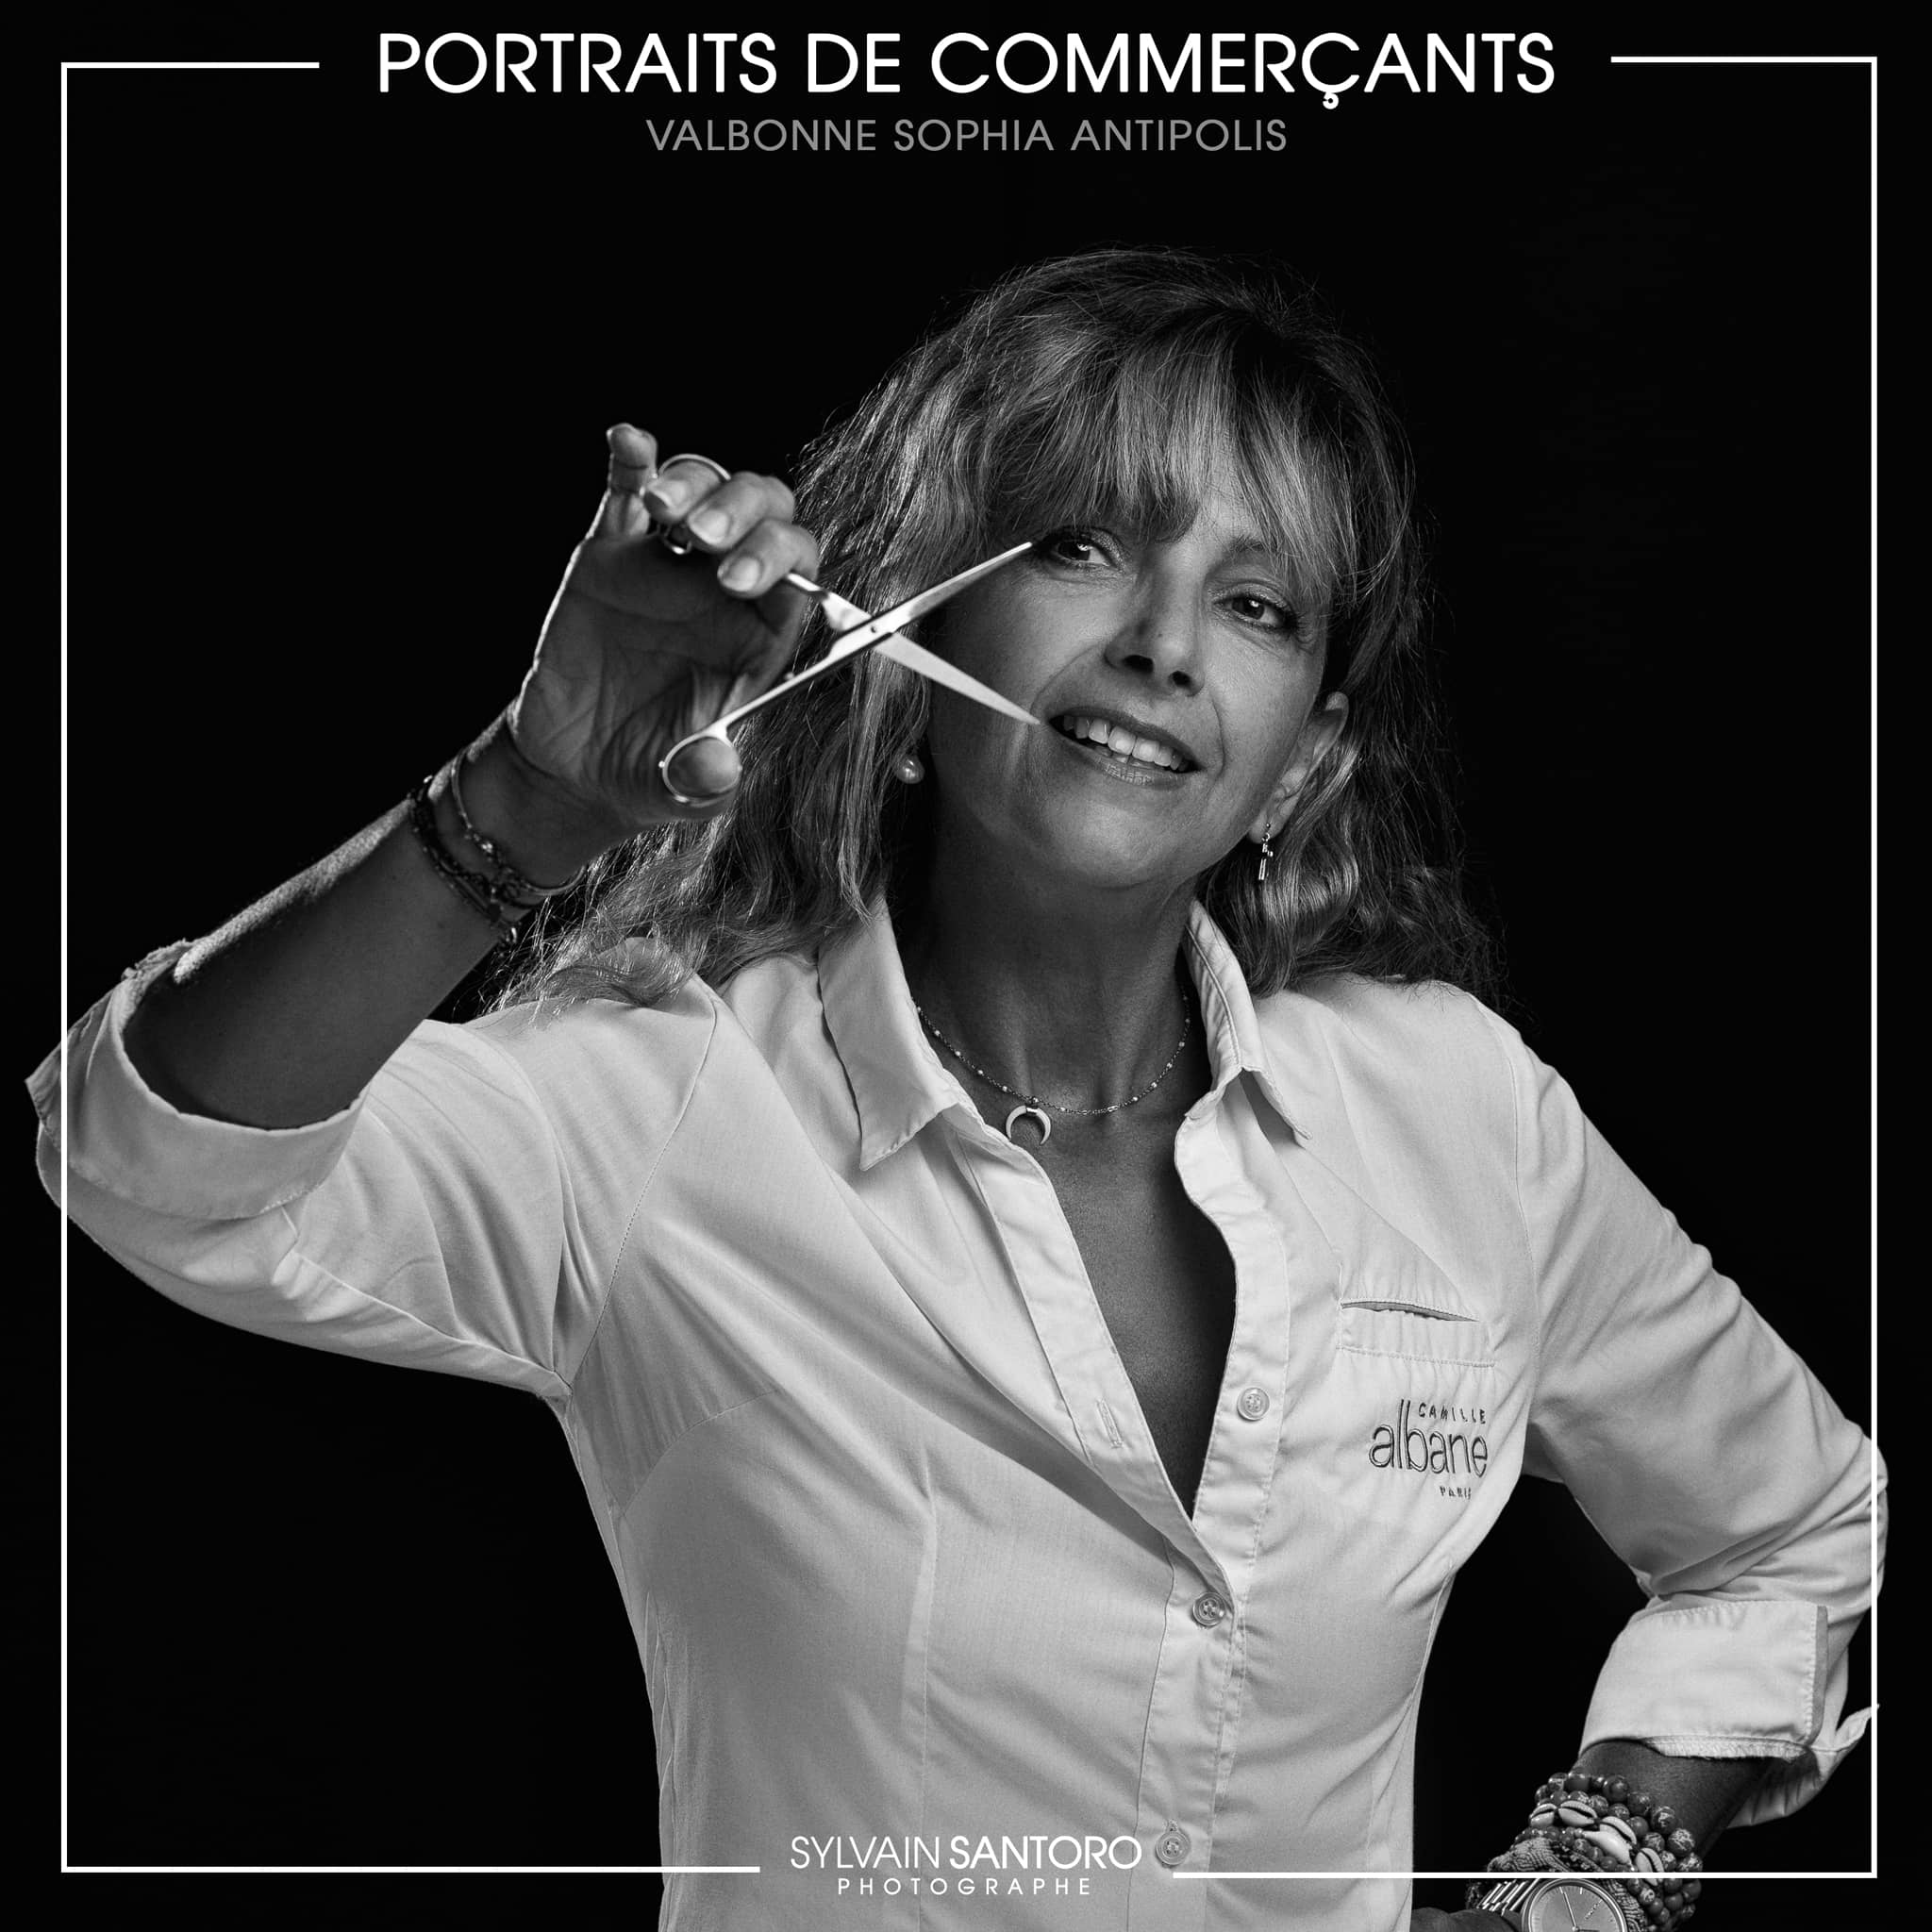 Portraits de Commerçants : Camille Albane